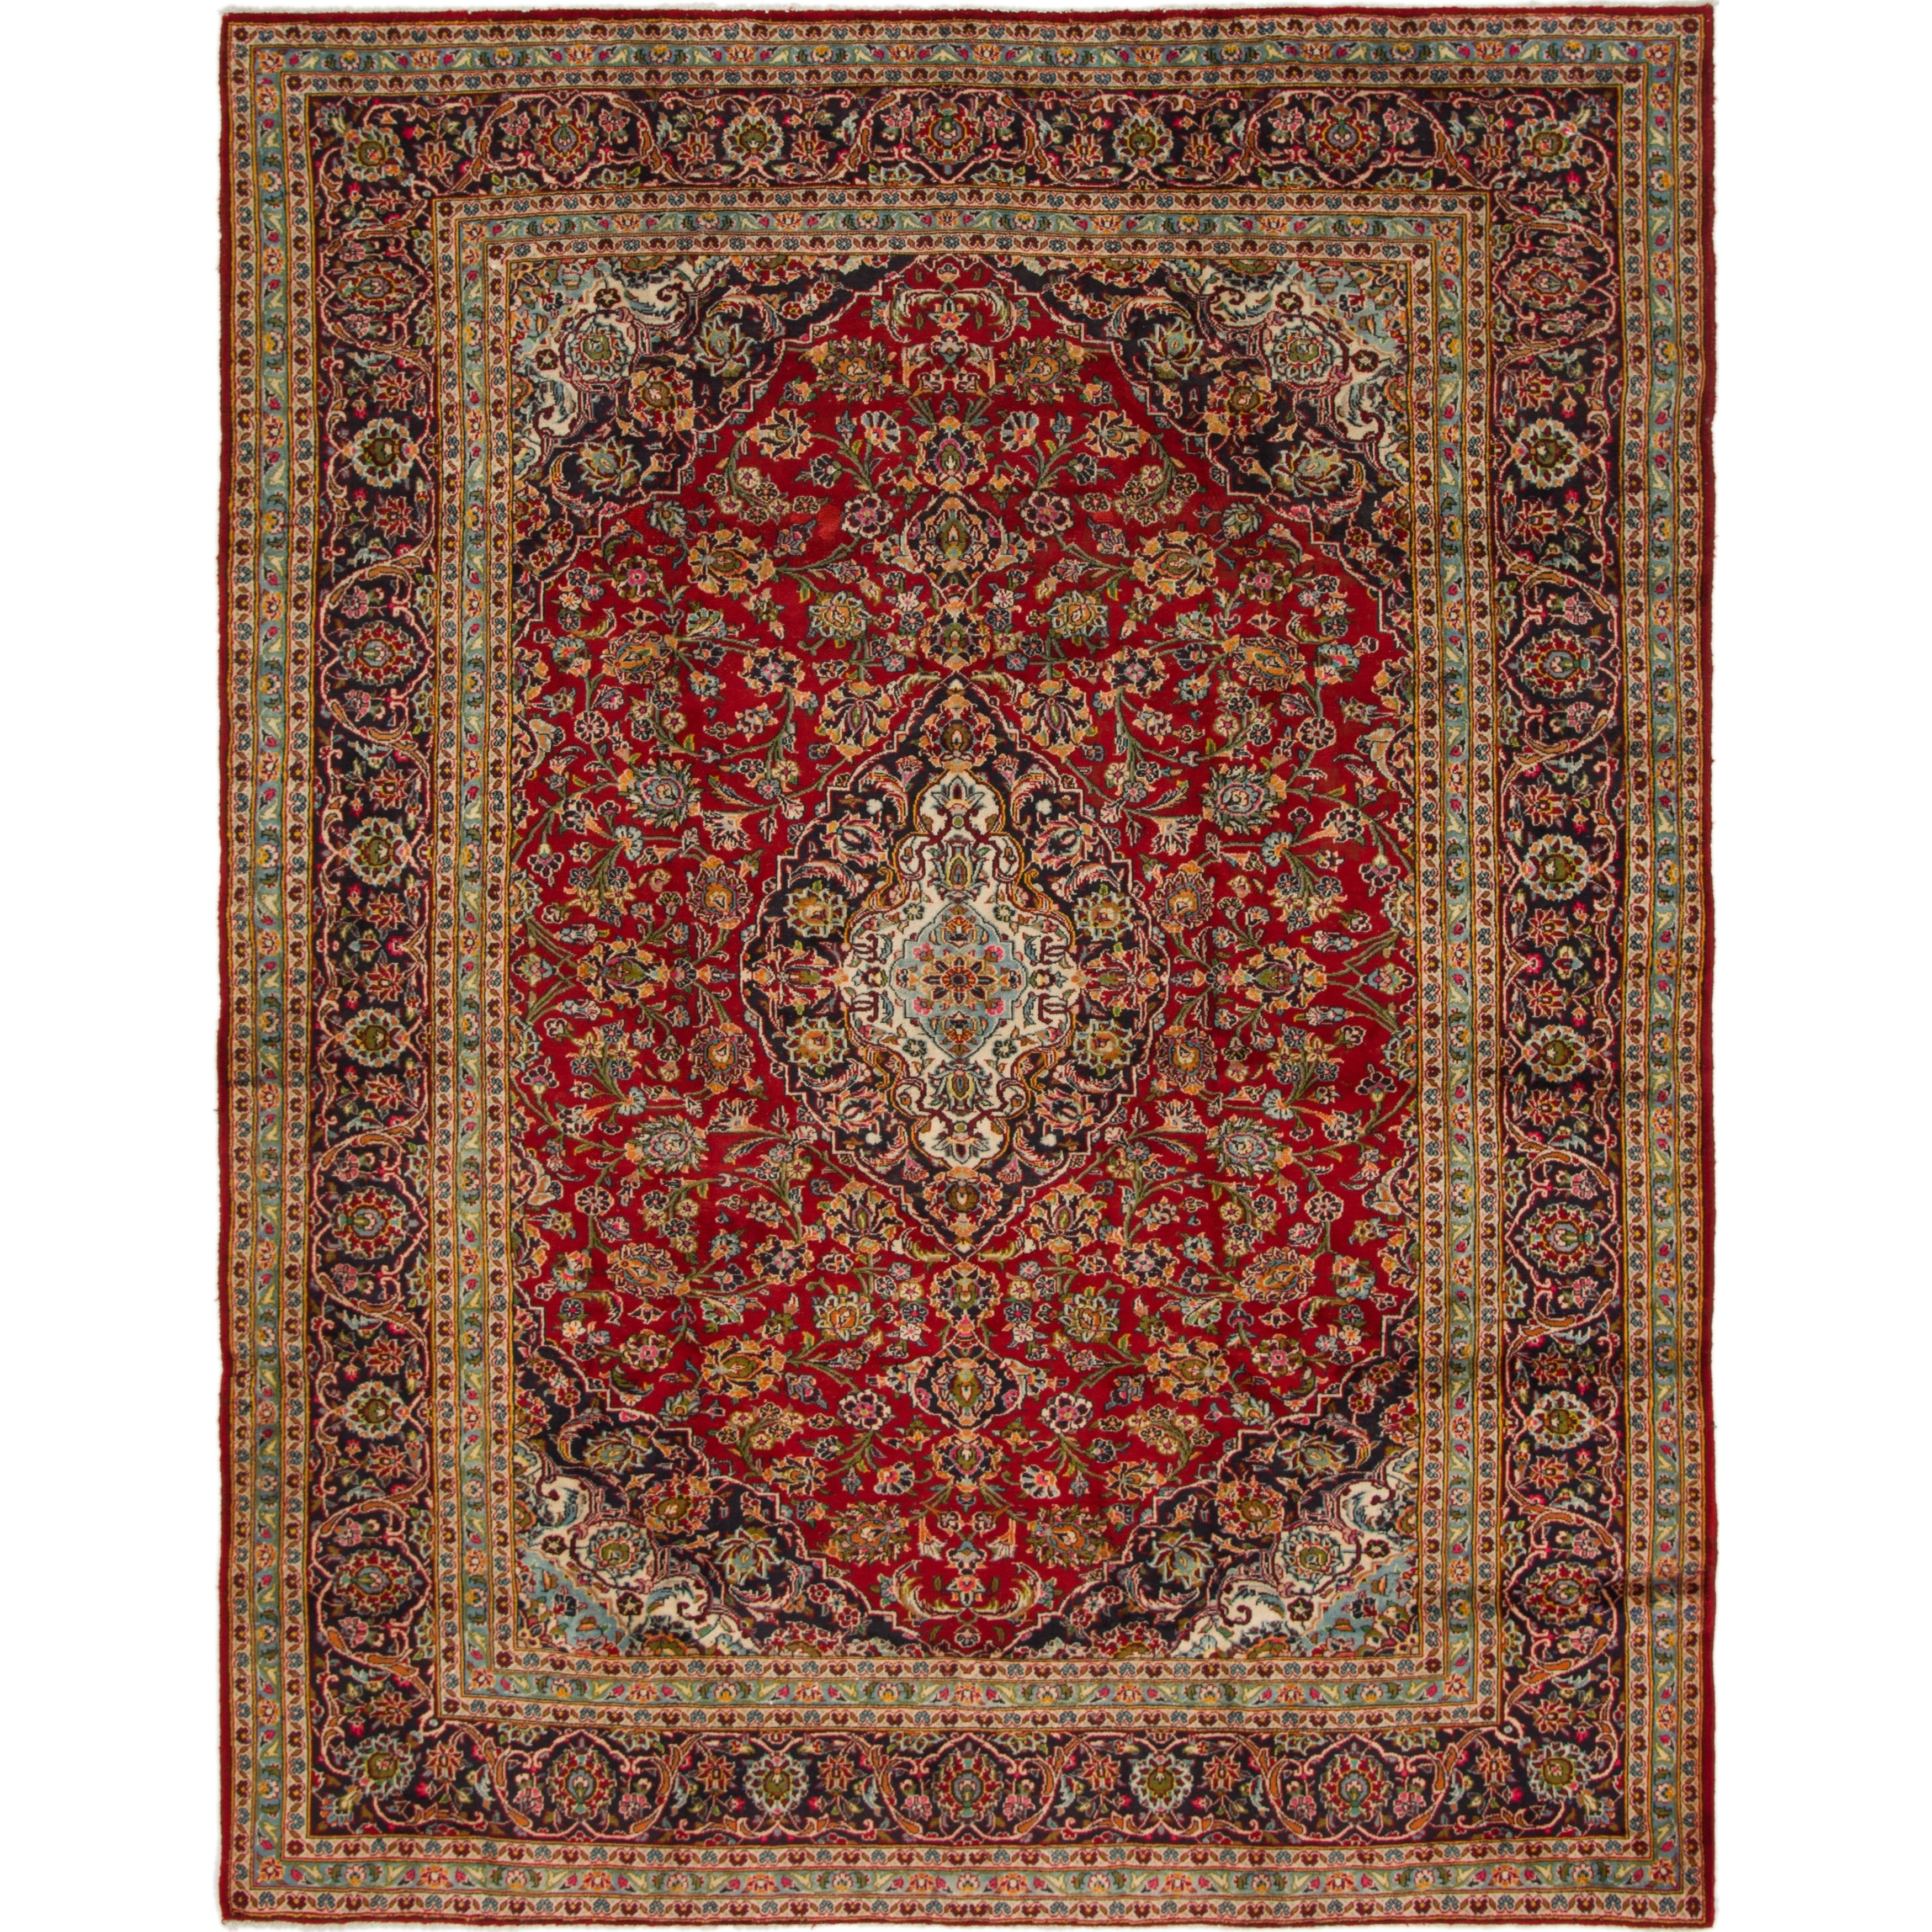 Hand Knotted Kashan Semi Antique Wool Area Rug - 9 6 x 12 3 (Red - 9 6 x 12 3)